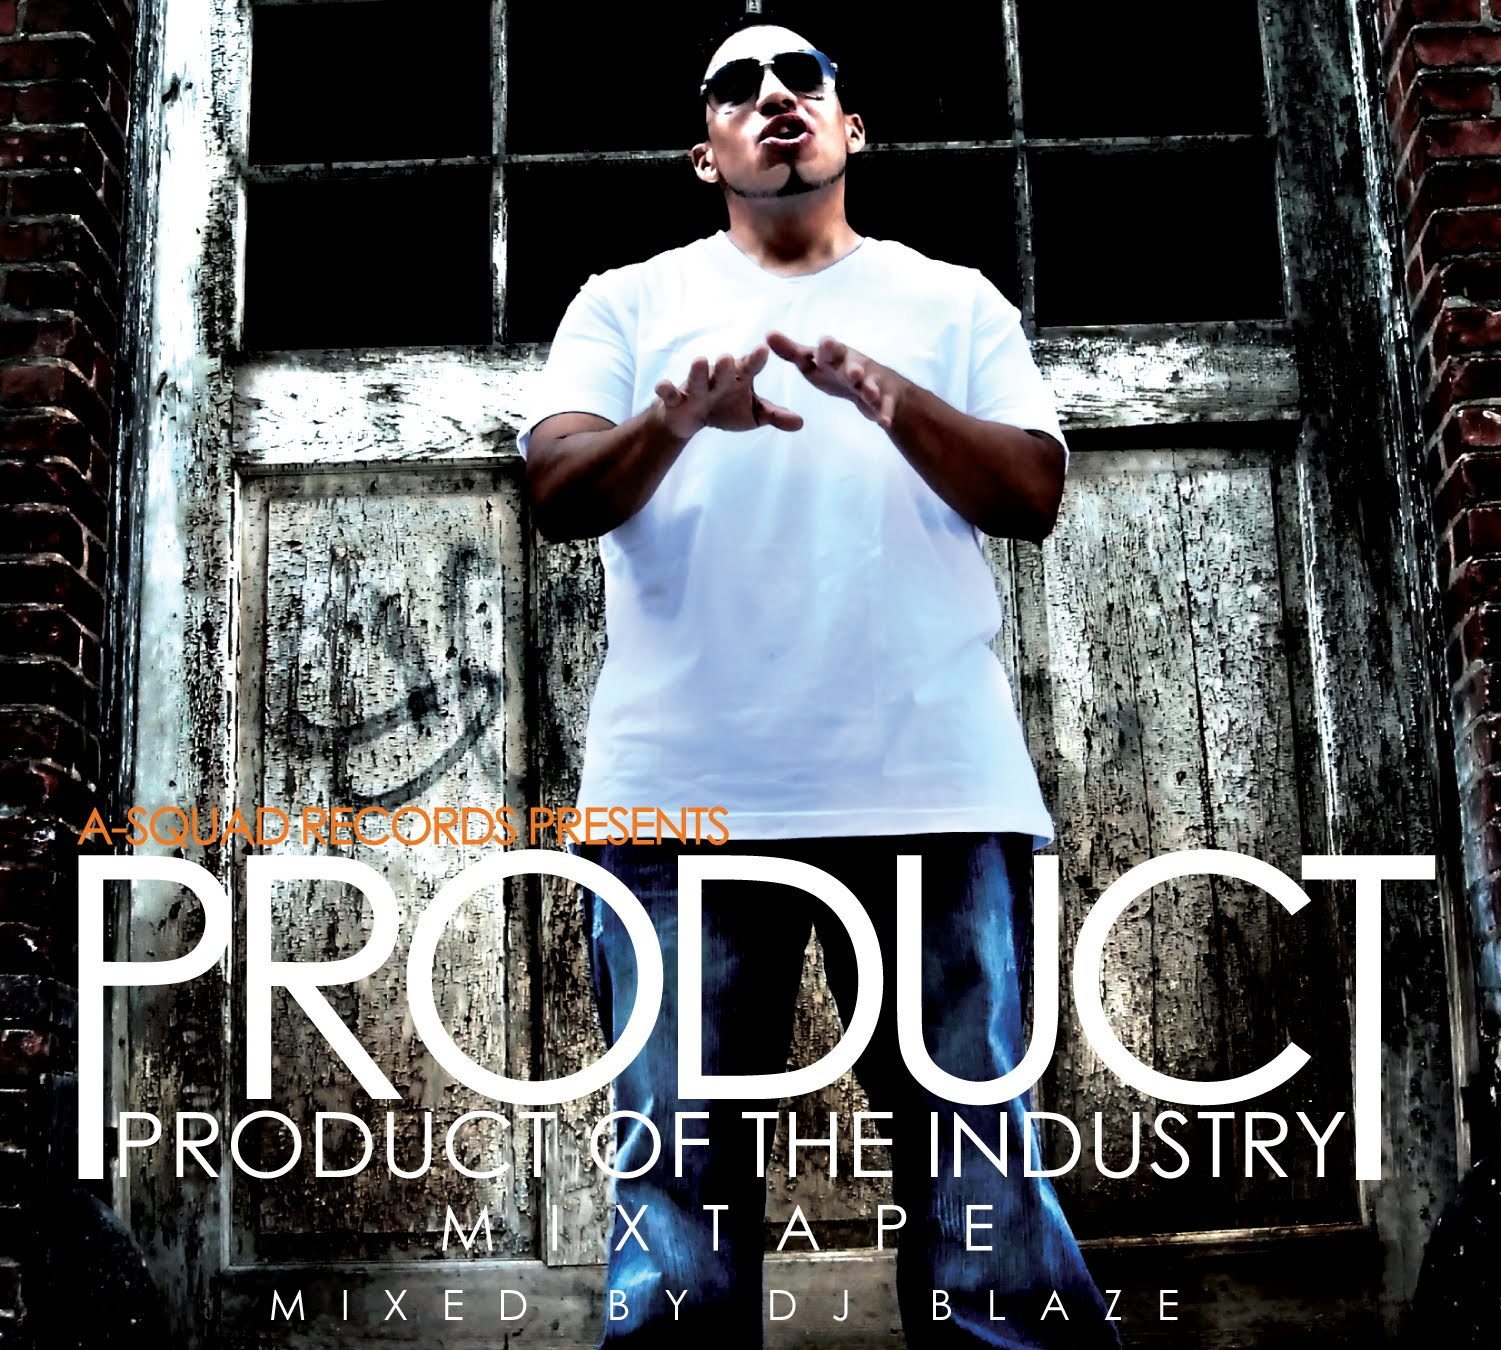 po politickin 2009 product product of the industry mixtape mixed by dj blaze